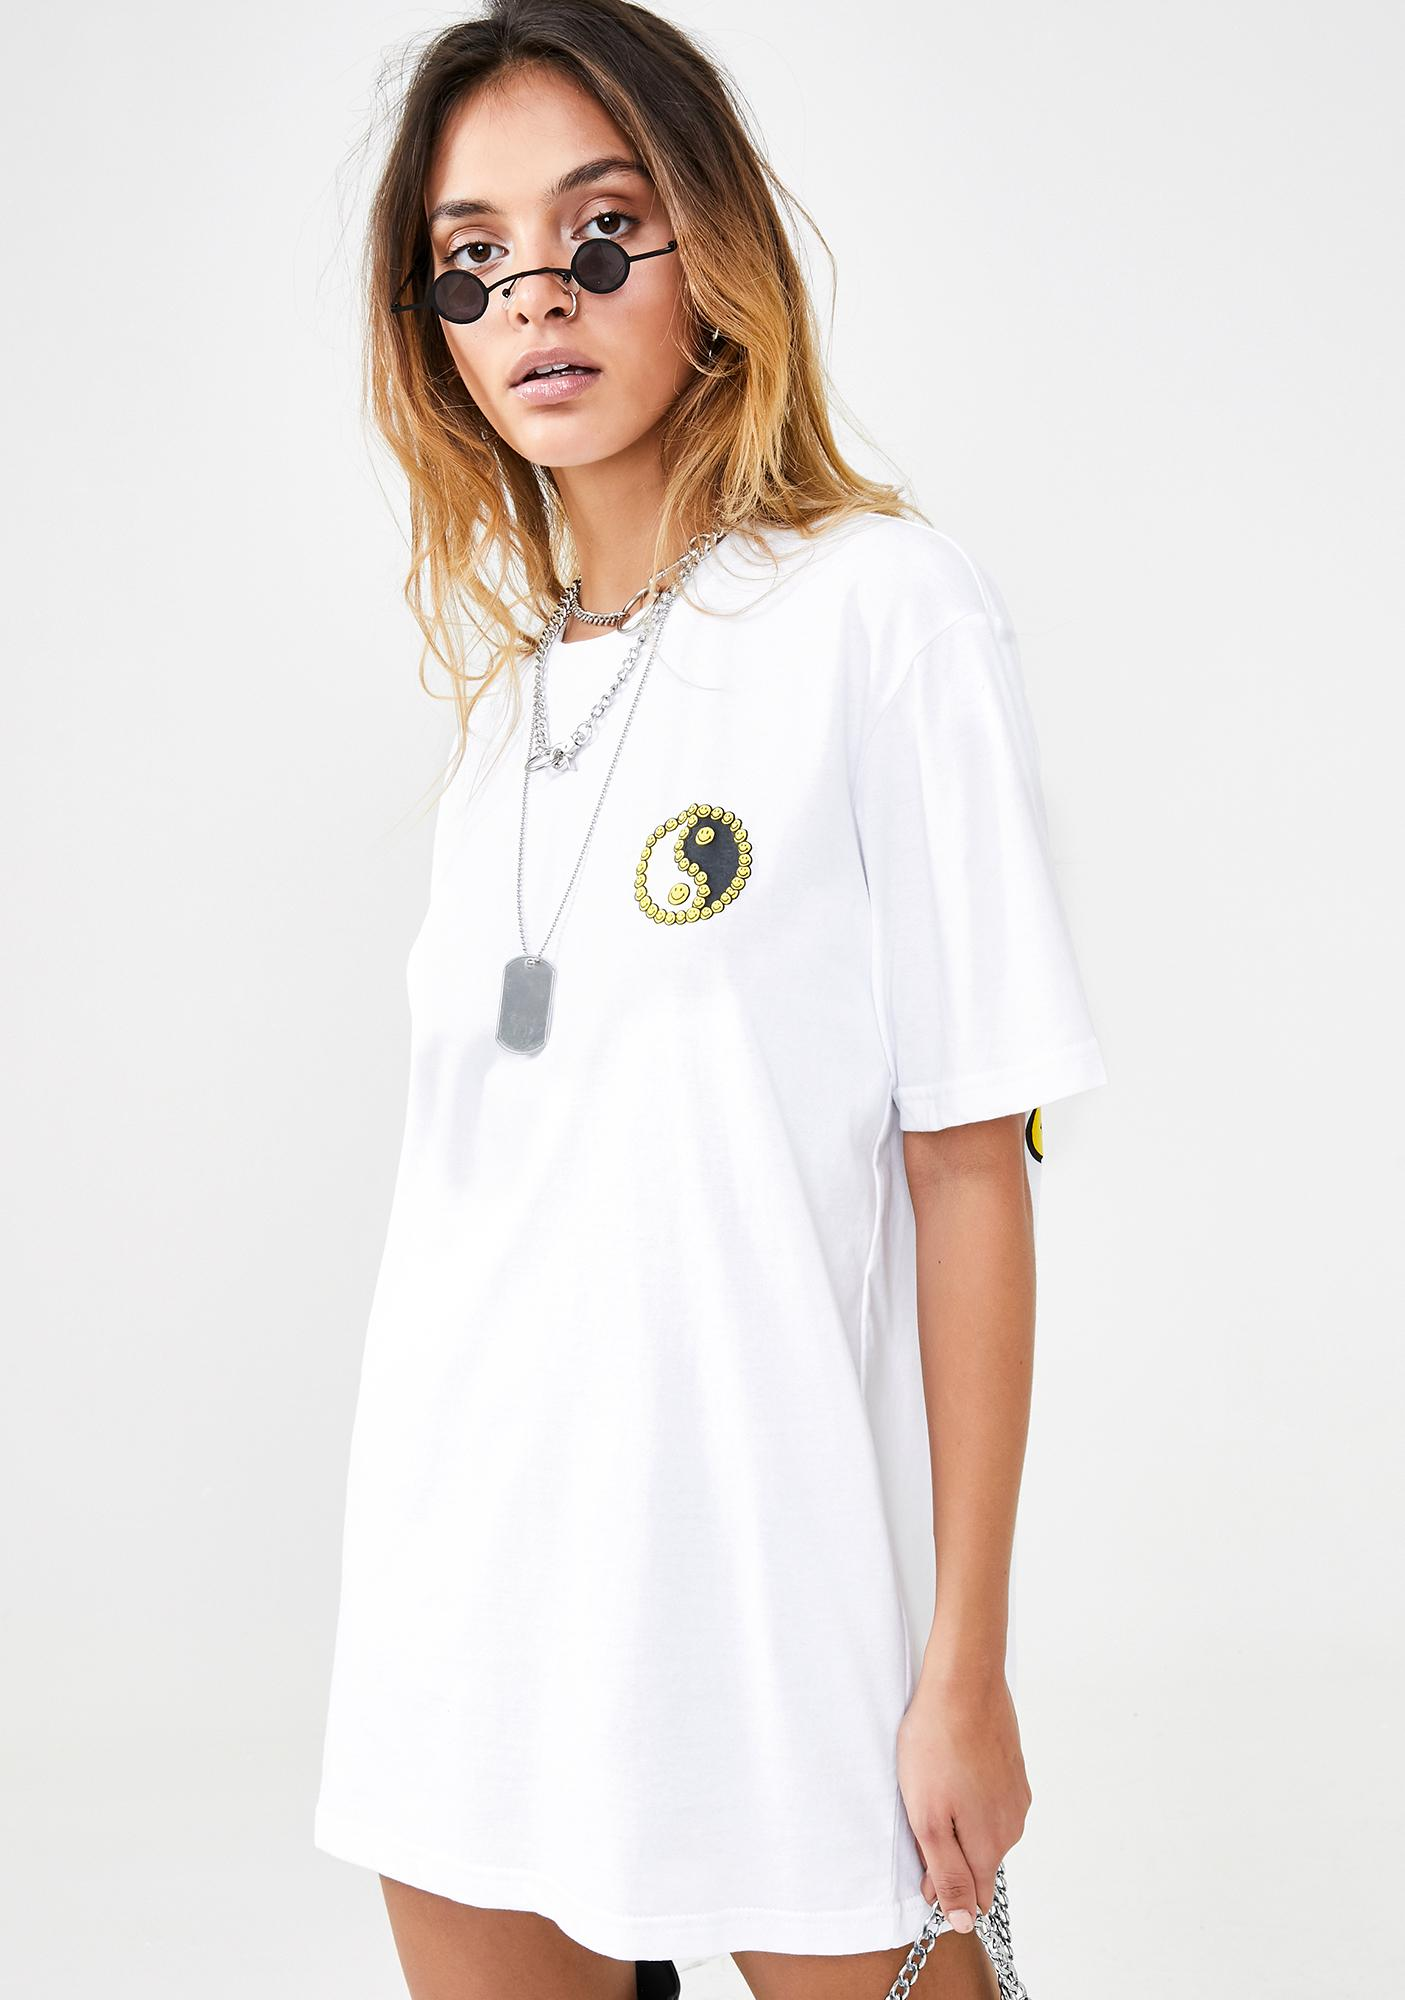 CHINATOWN MARKET Peace Smiley T-Shirt